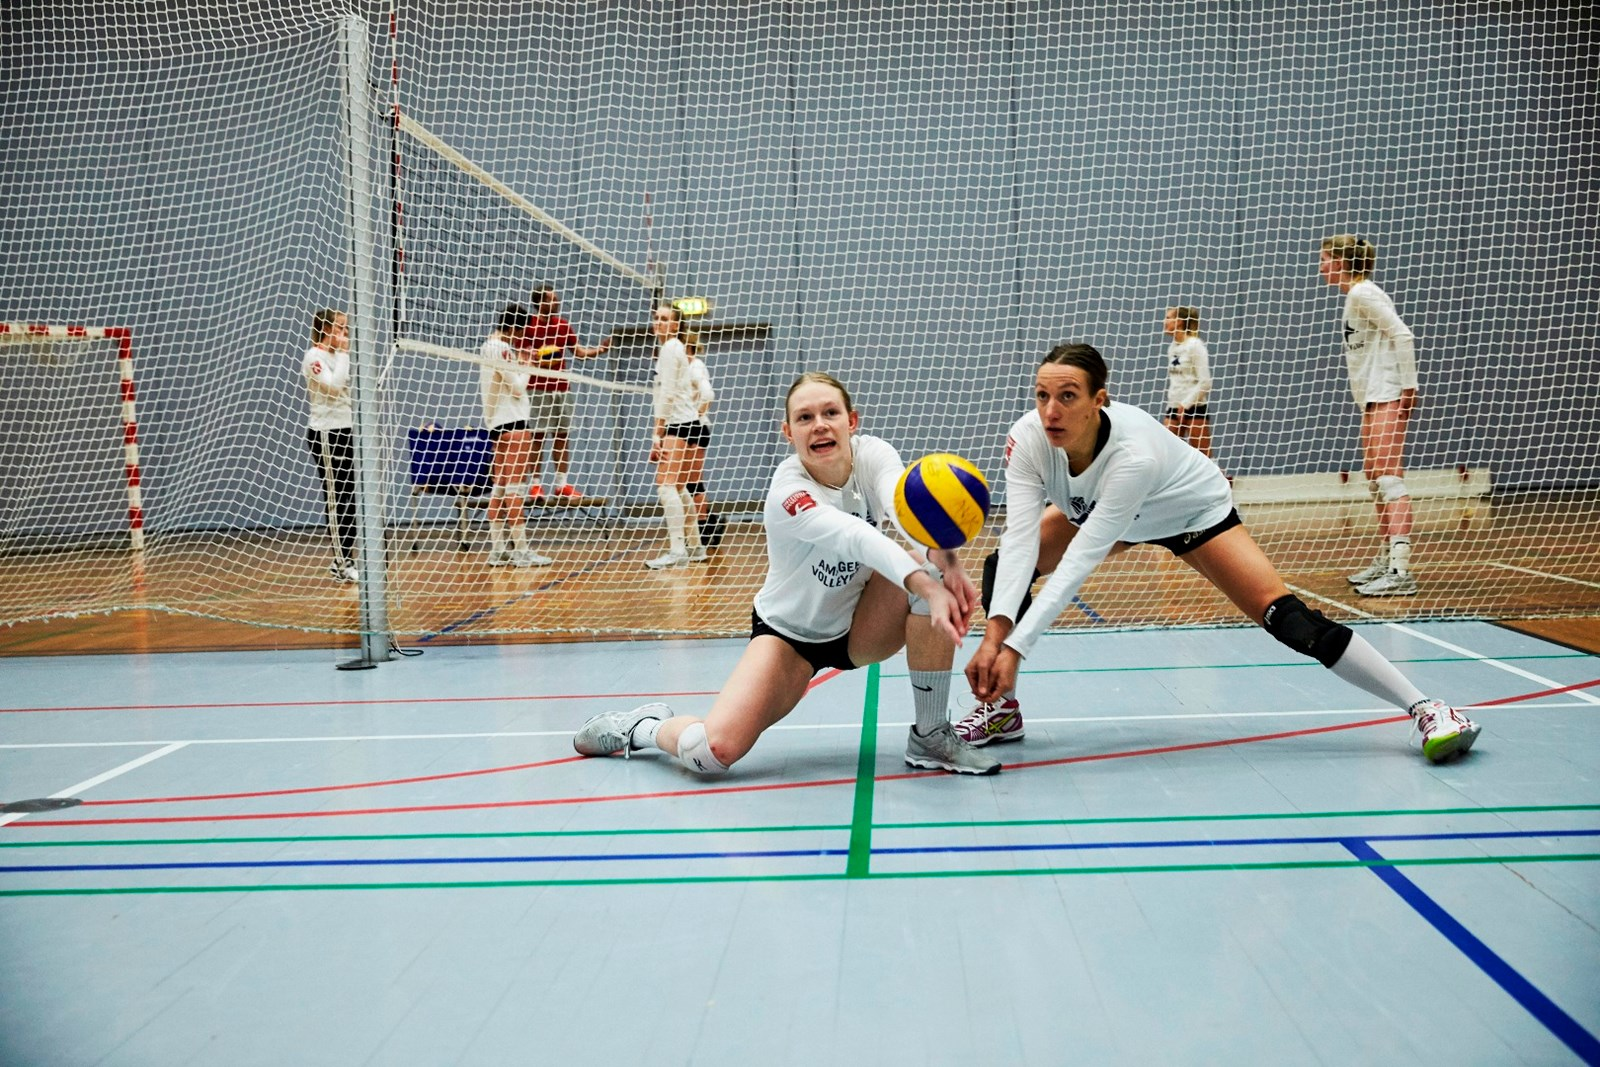 Amager Volleyball Klub